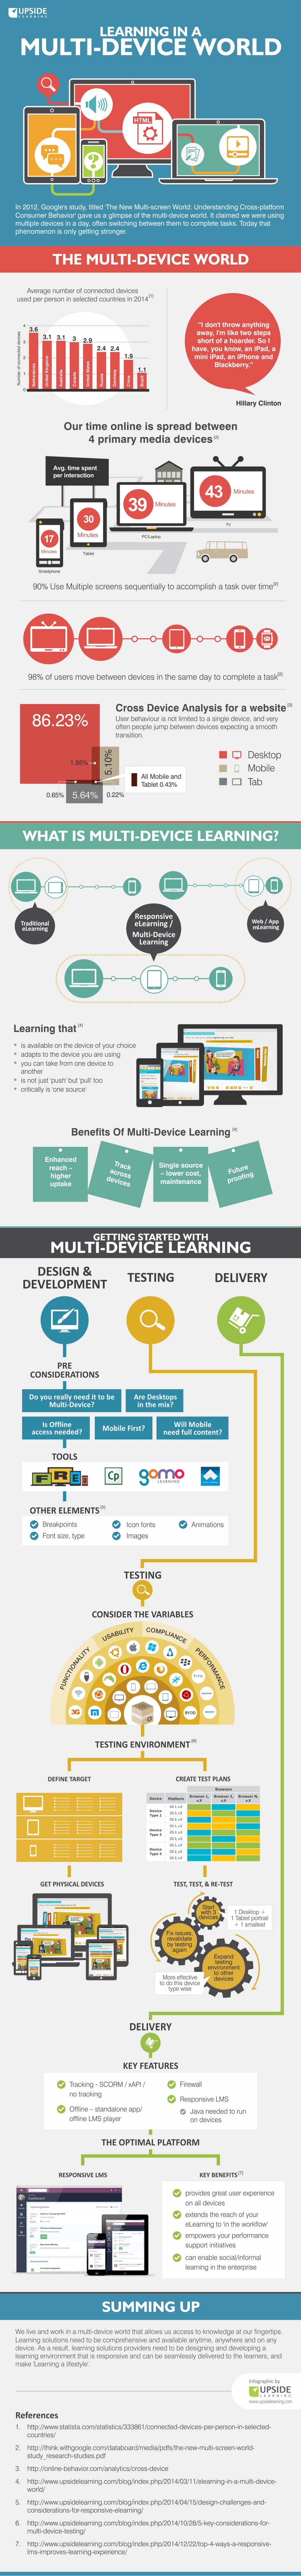 Learning in a Multi-device World Infographic